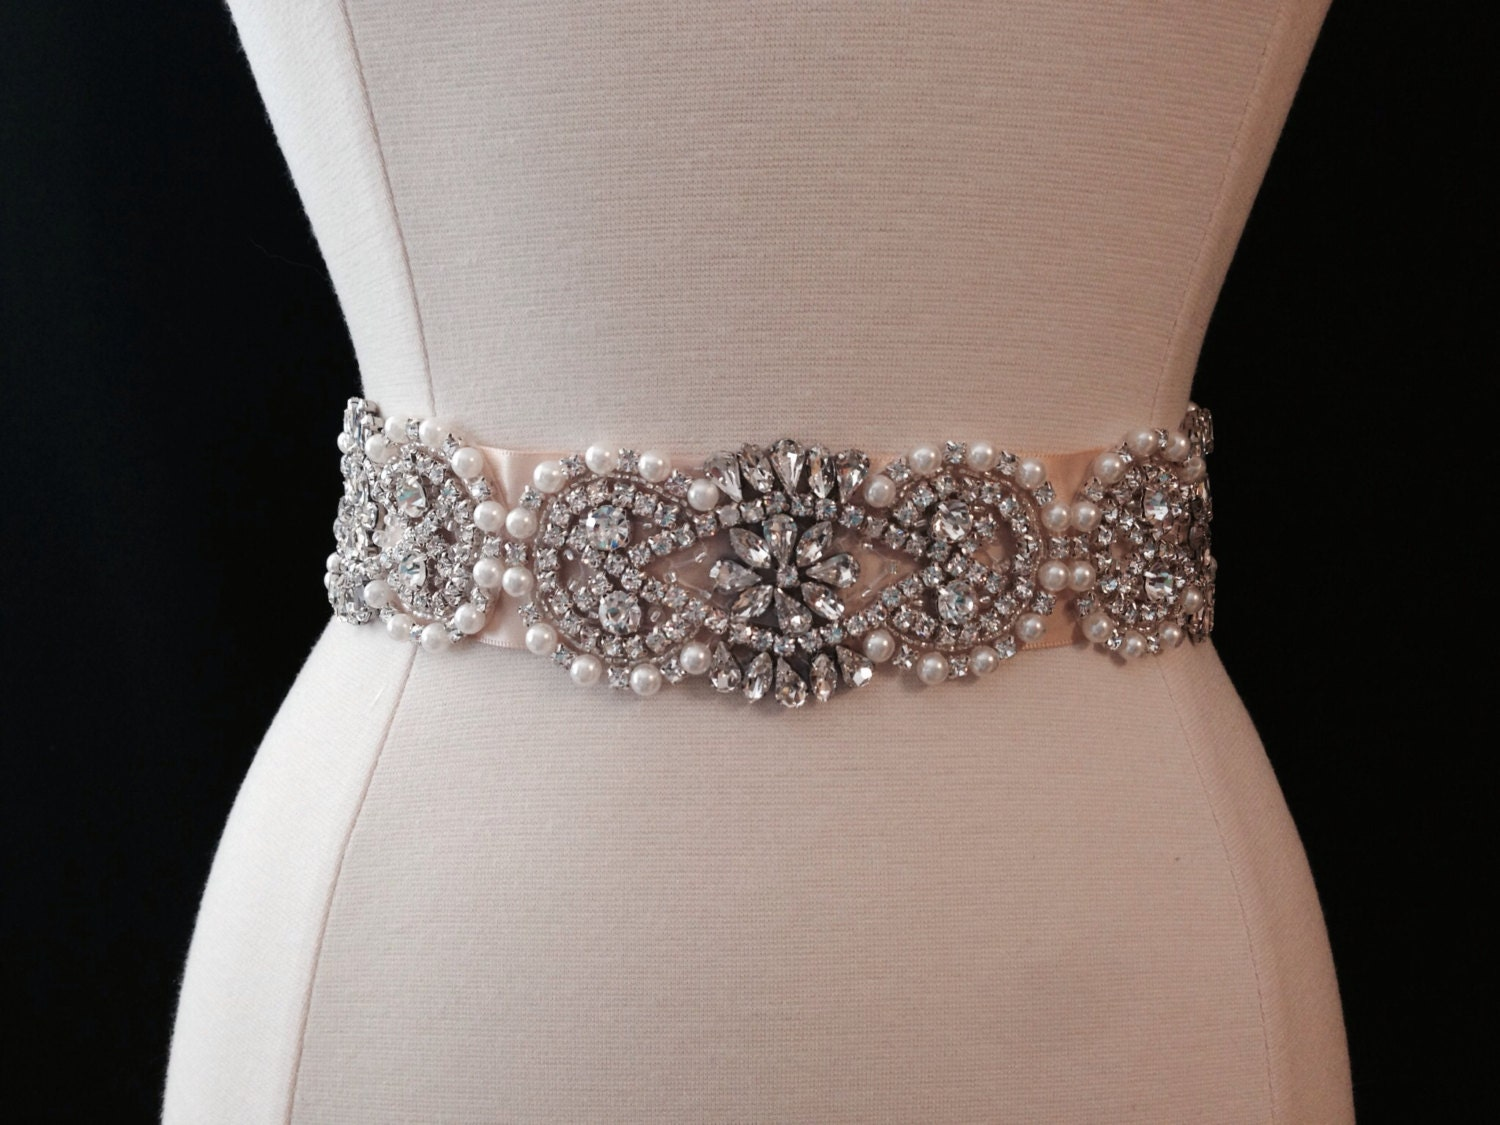 Bridal Sash Wedding Dress Sash Belt Rhinestone And Pearl